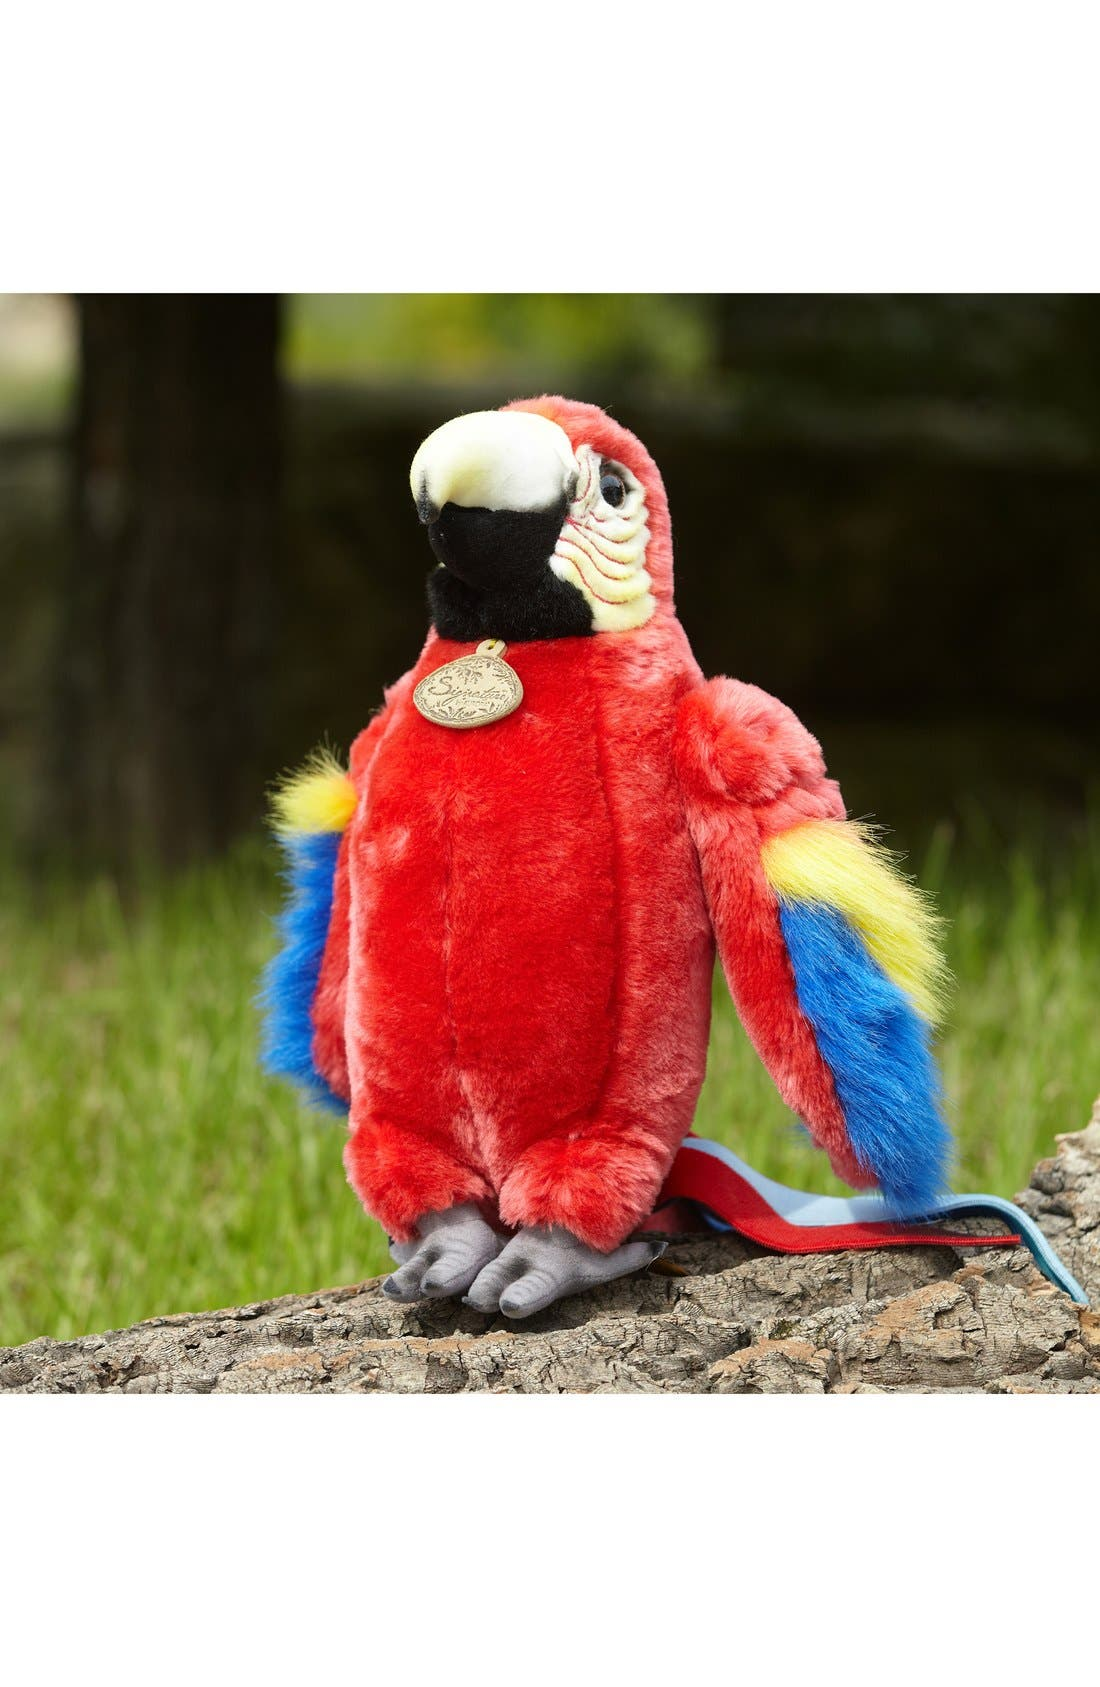 'Scarlet Macaw' Stuffed Animal,                             Alternate thumbnail 2, color,                             Red